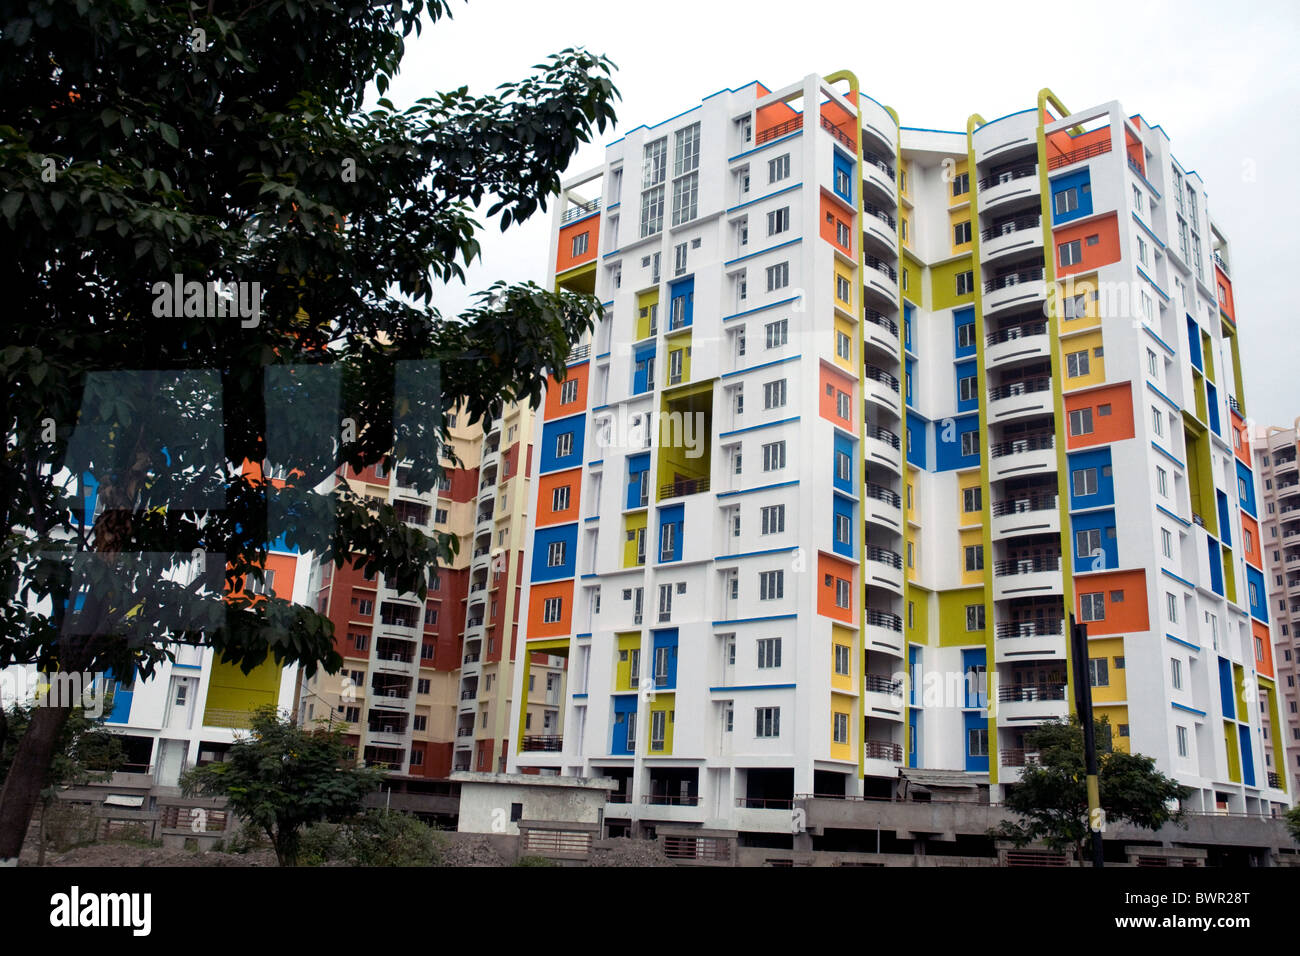 Bright new apartments among continuing construction in Kolkata's spreading suburbs - Stock Image